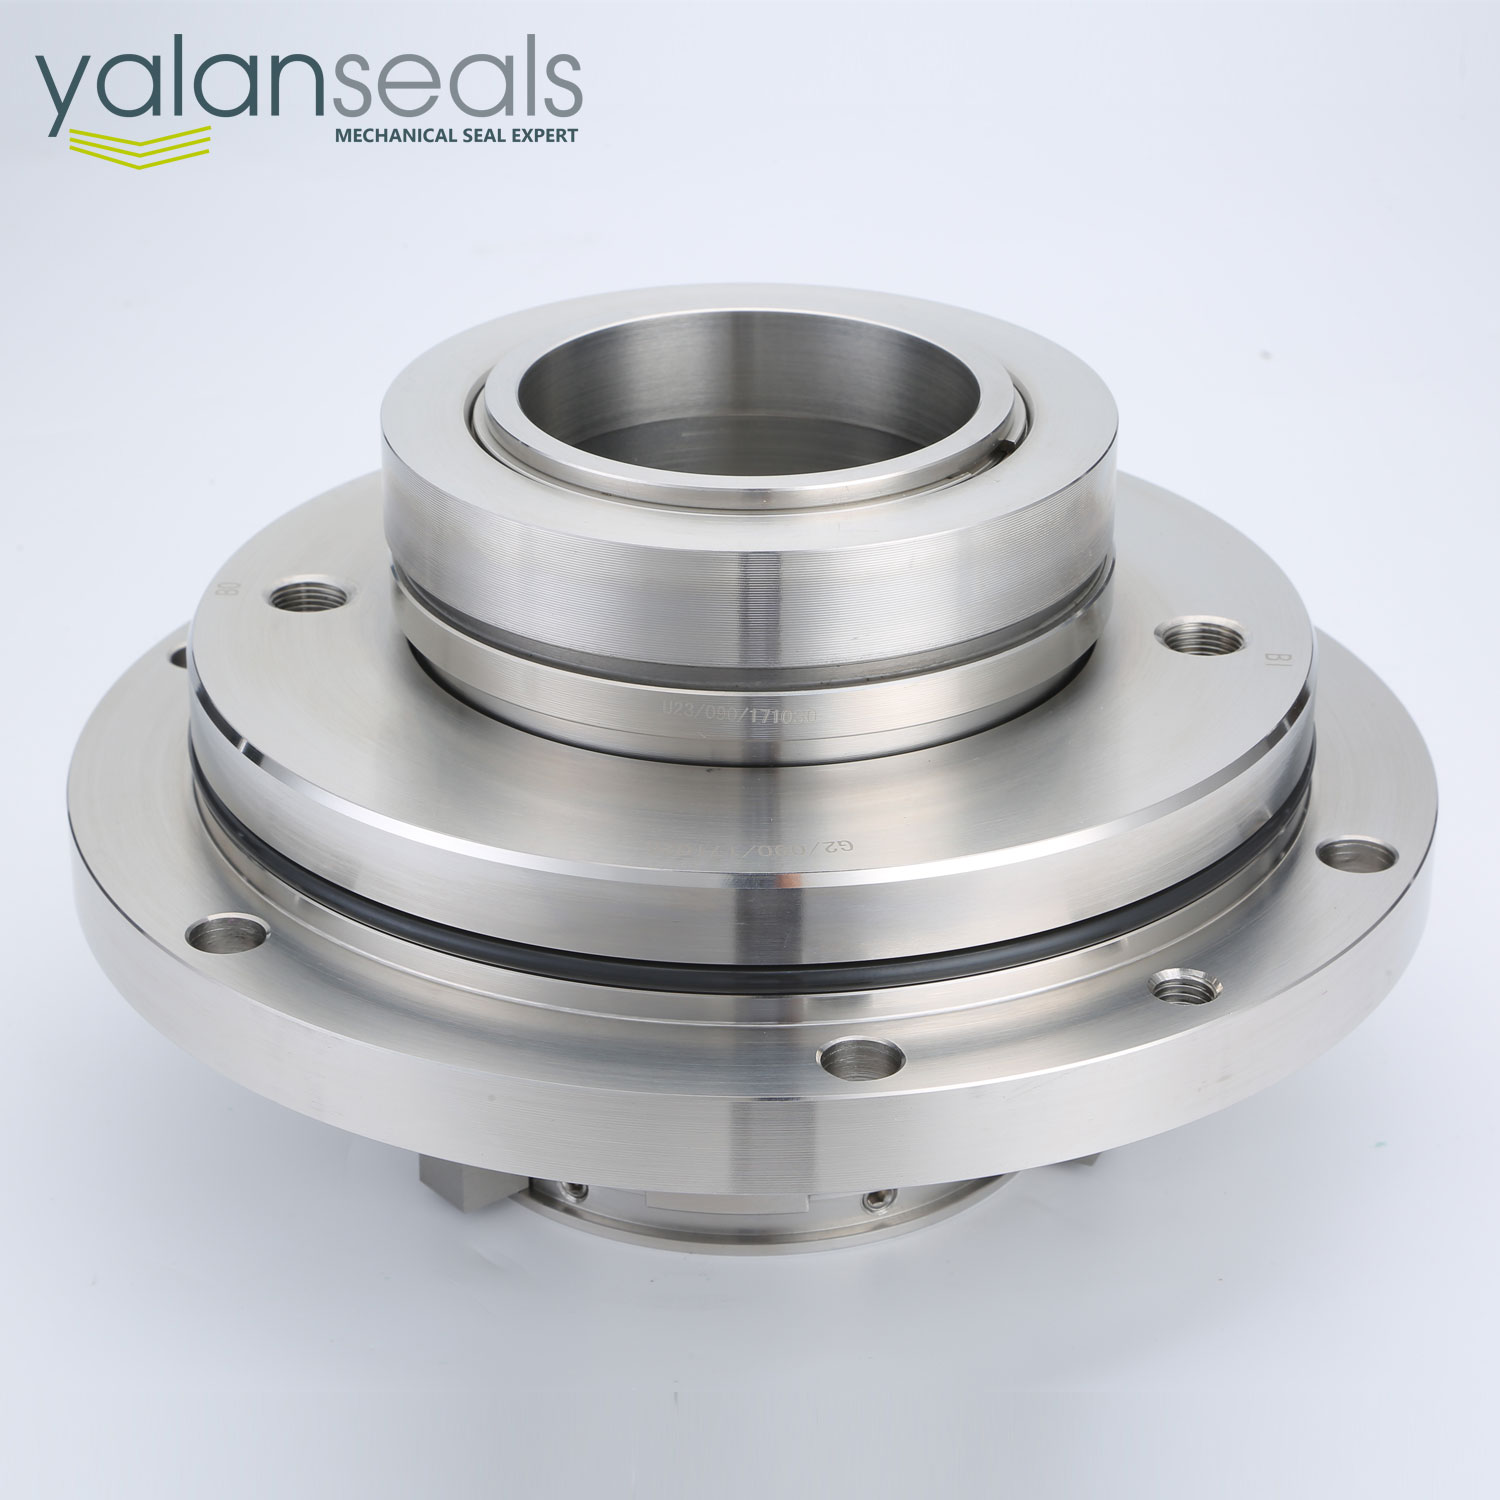 SAF Mechanical Seal for Paper-making Equipment and Pressure Screens (for paper pulp agitation)